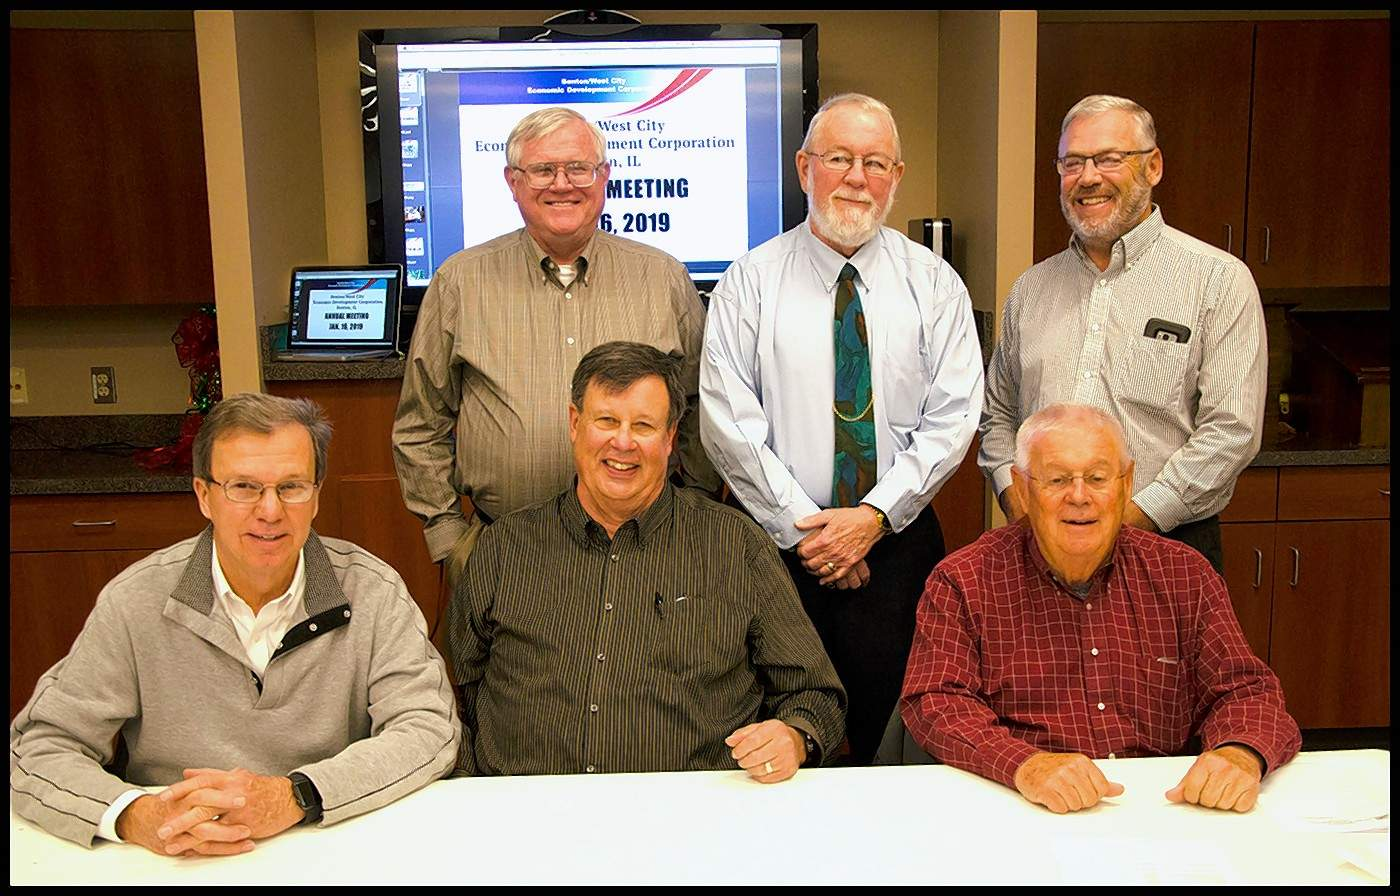 At the last annual meeting of the Benton/West City Economic Development Corp., a new executive board was elected. It includes John Huffman as chairman, Dick Rice as vice chairman, Hervey Davis as past chairman, Mike Brachear as secretary, Bill Simpson as treasurer and Dave Cooper as executive director.